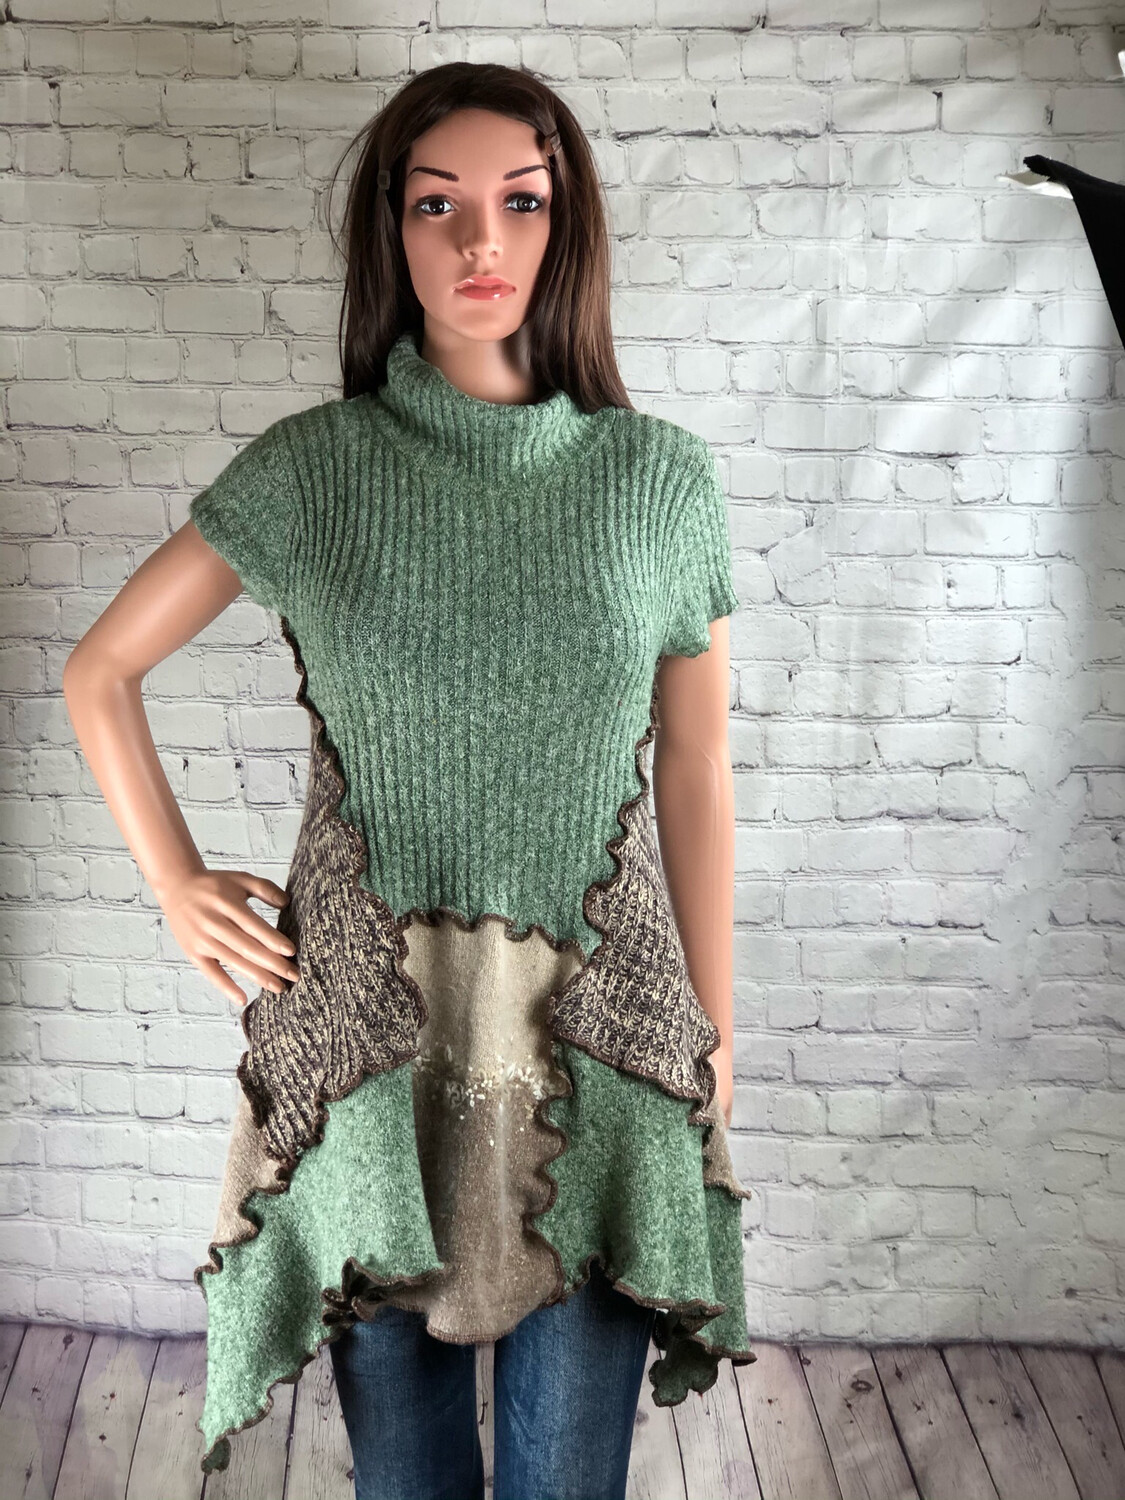 Upcycled Cowl Neck Sweater Tunic Patchwork Outside Stitch Mocha Green Angora Oversized Comfy Aline S Threads Size L